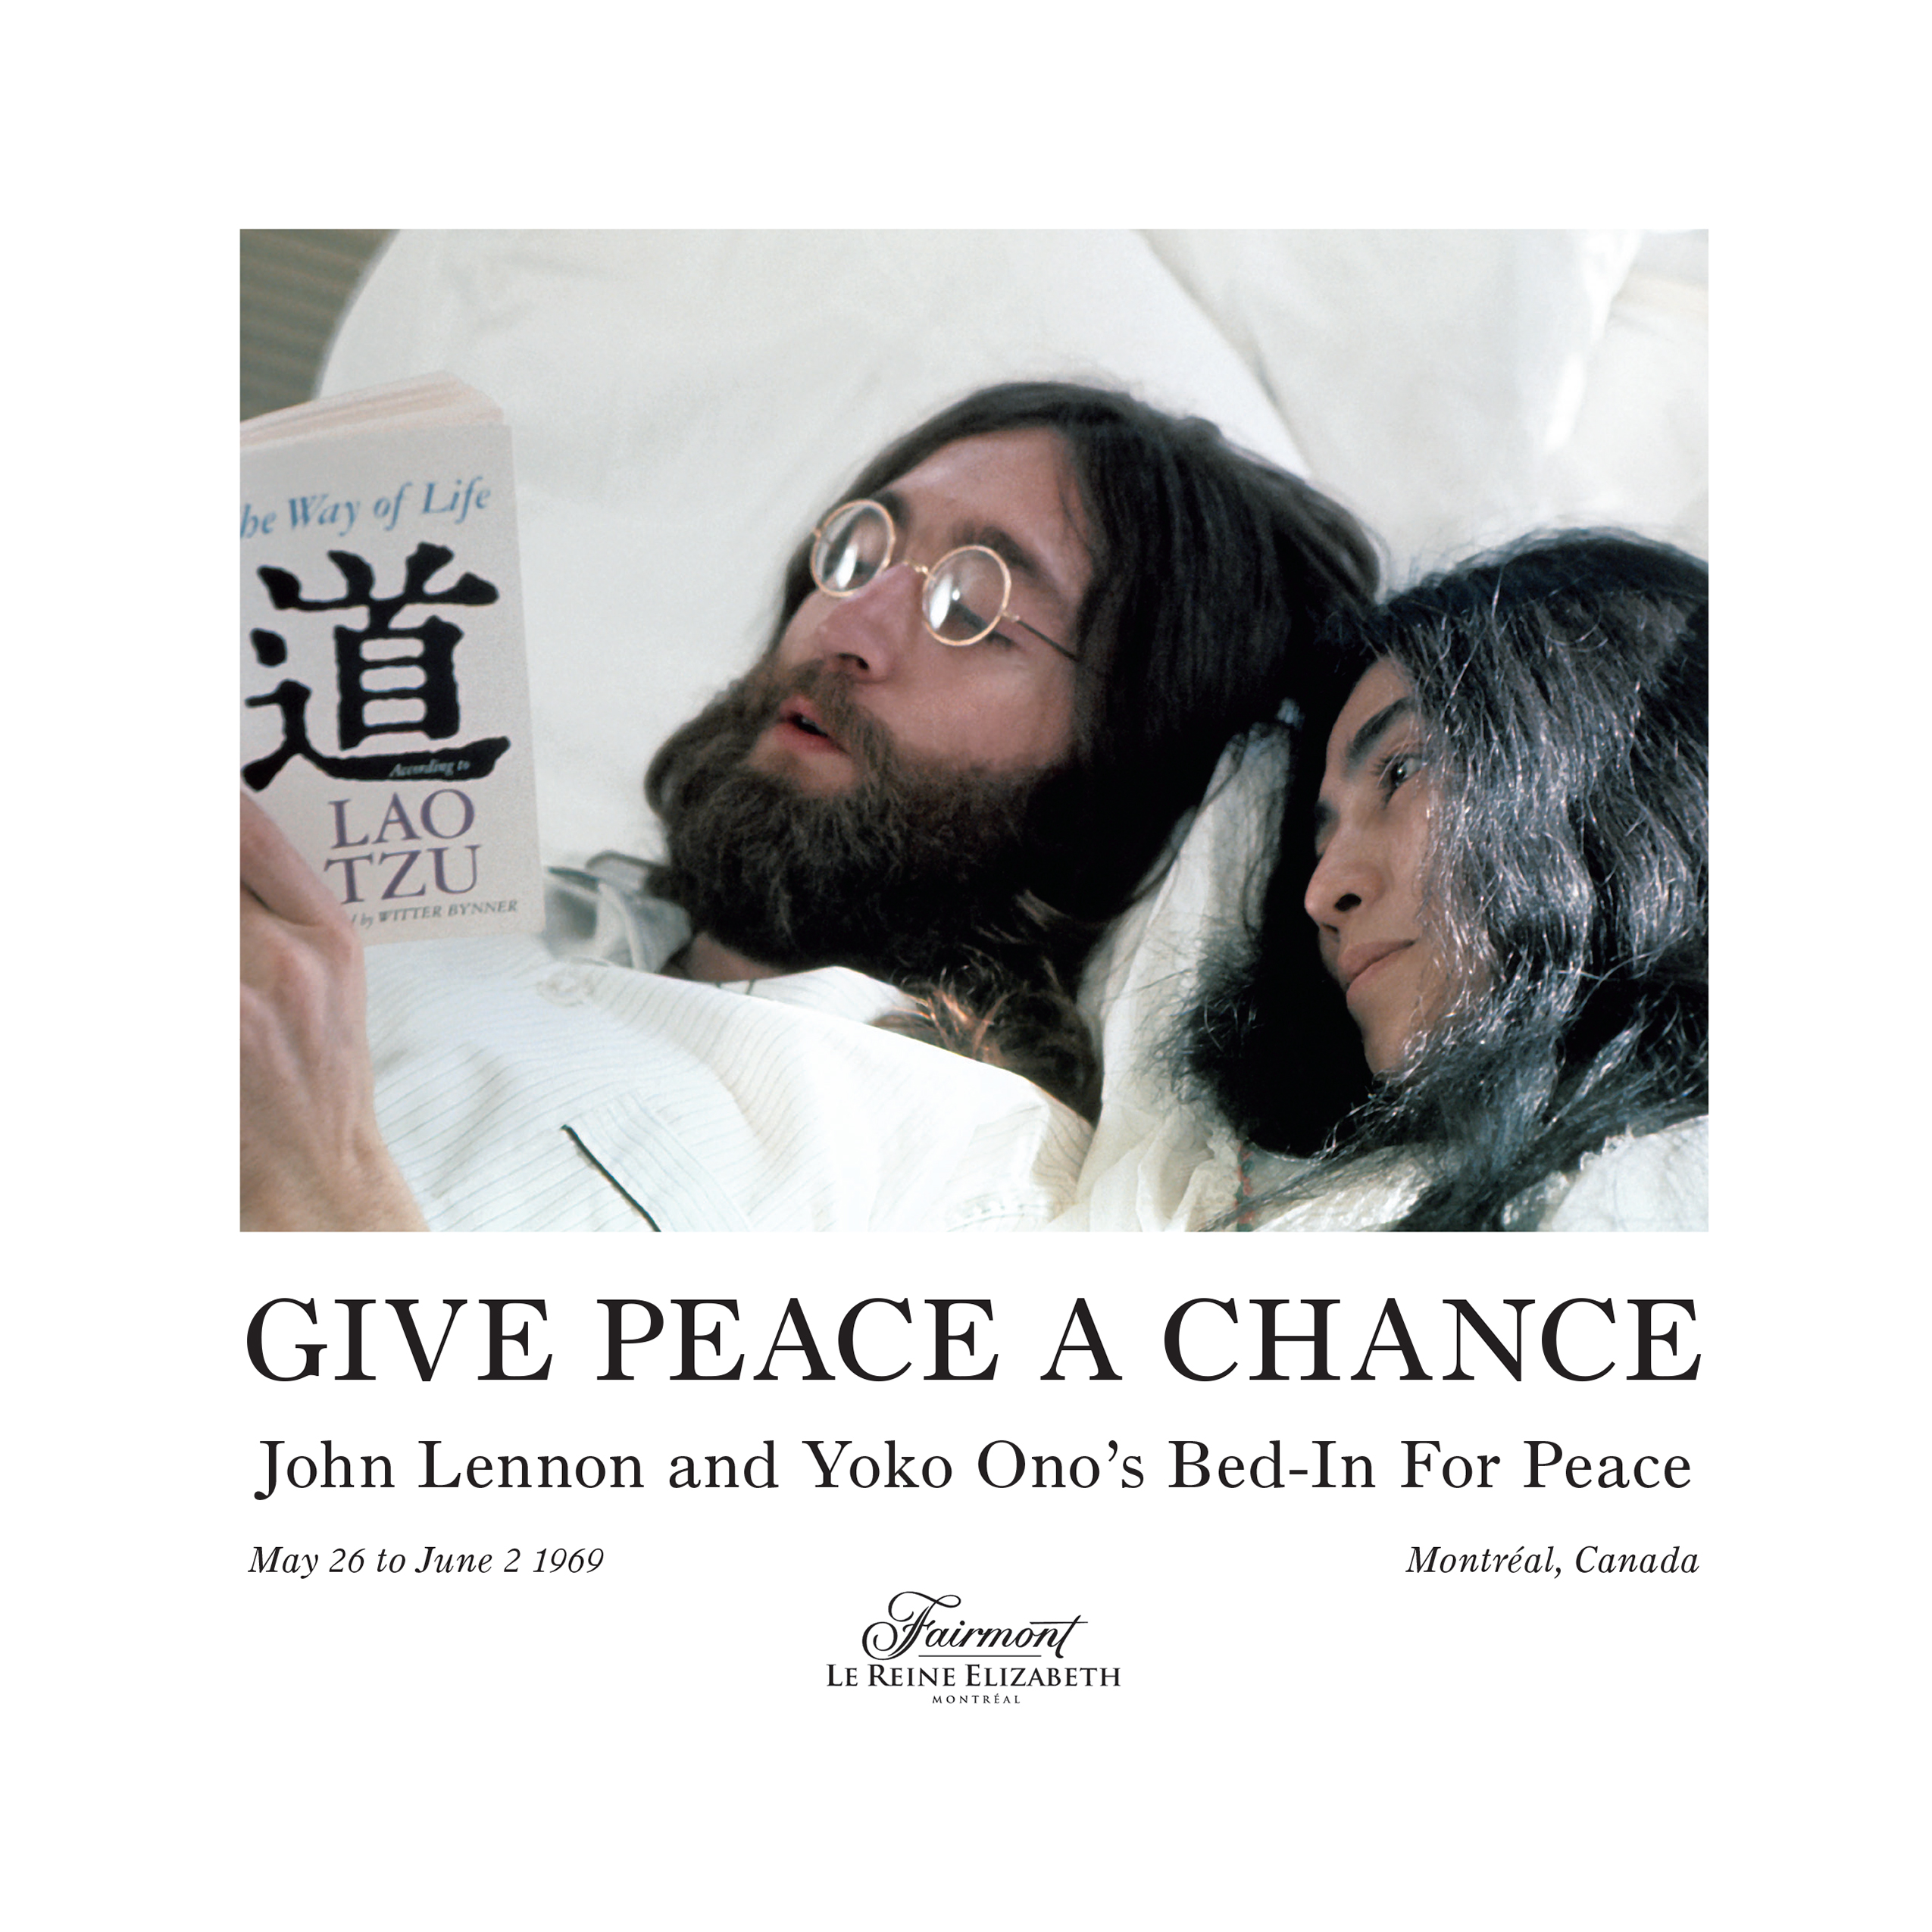 Give Peace a Chance: John Lennon and Yoko Ono's Bed-In For Peace